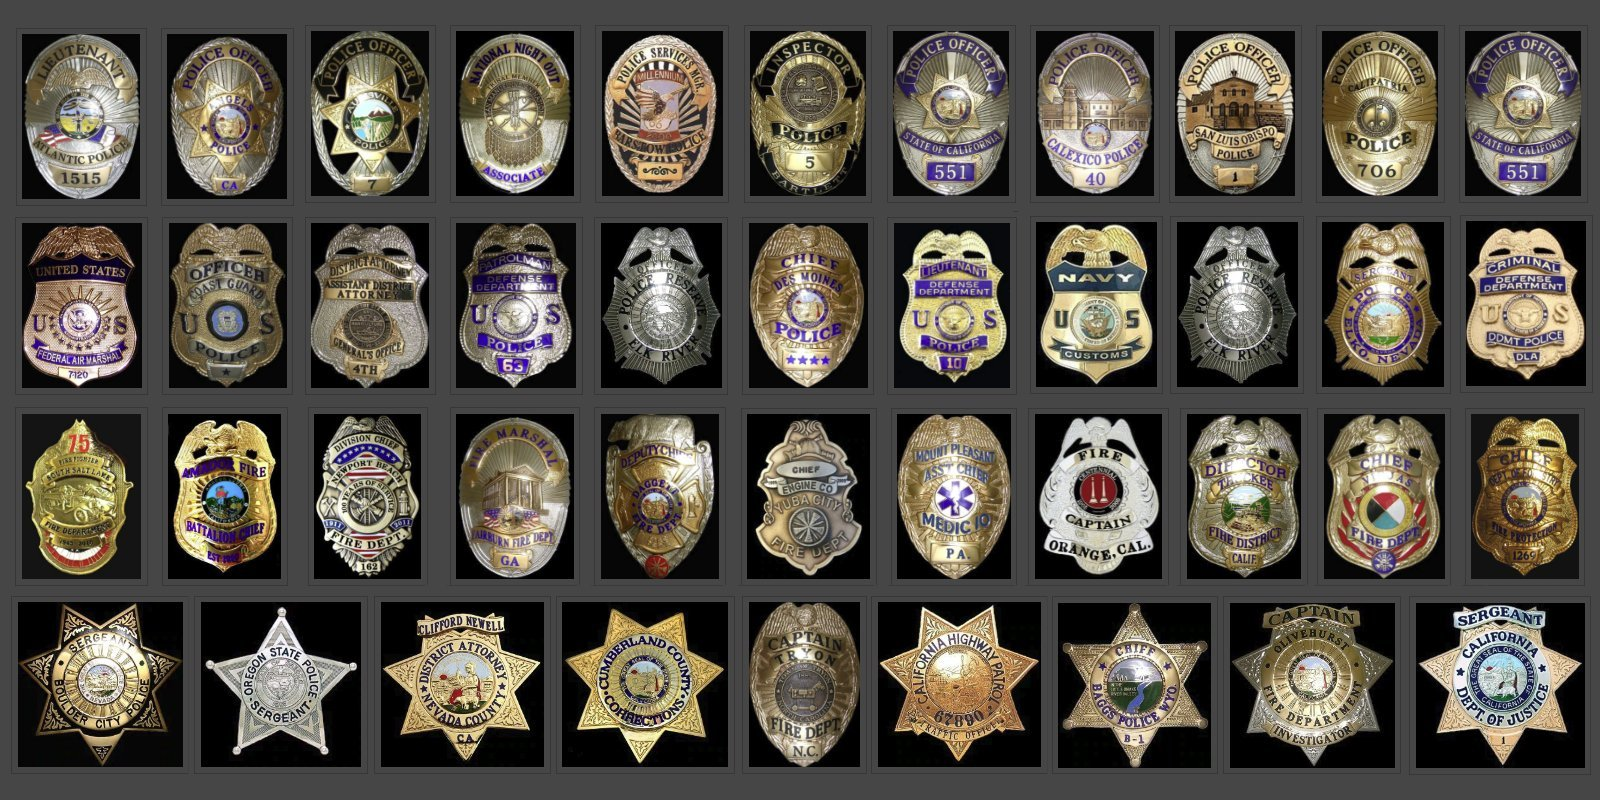 Police Badges by Lawman Badge Company